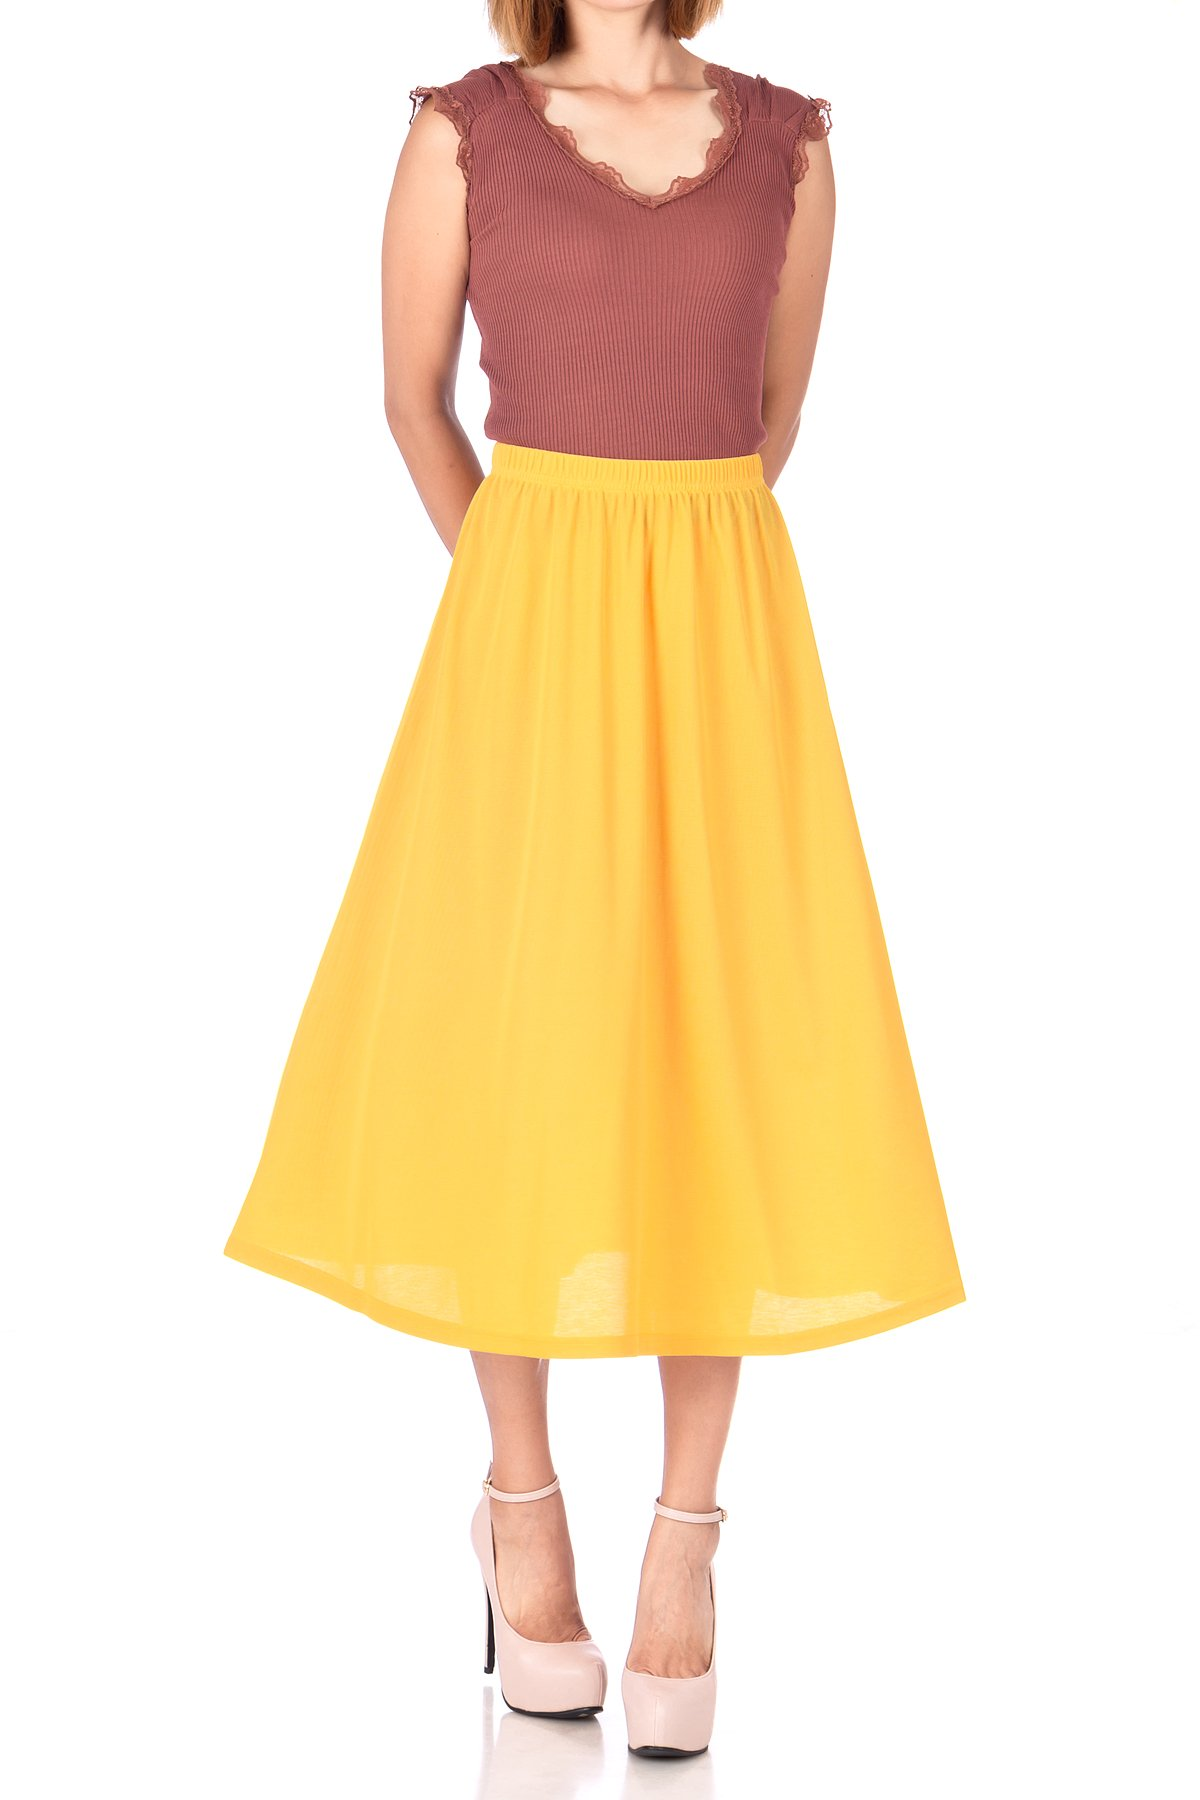 Brilliant Elastic Waist Full Flared Long Skirt Yellow 04